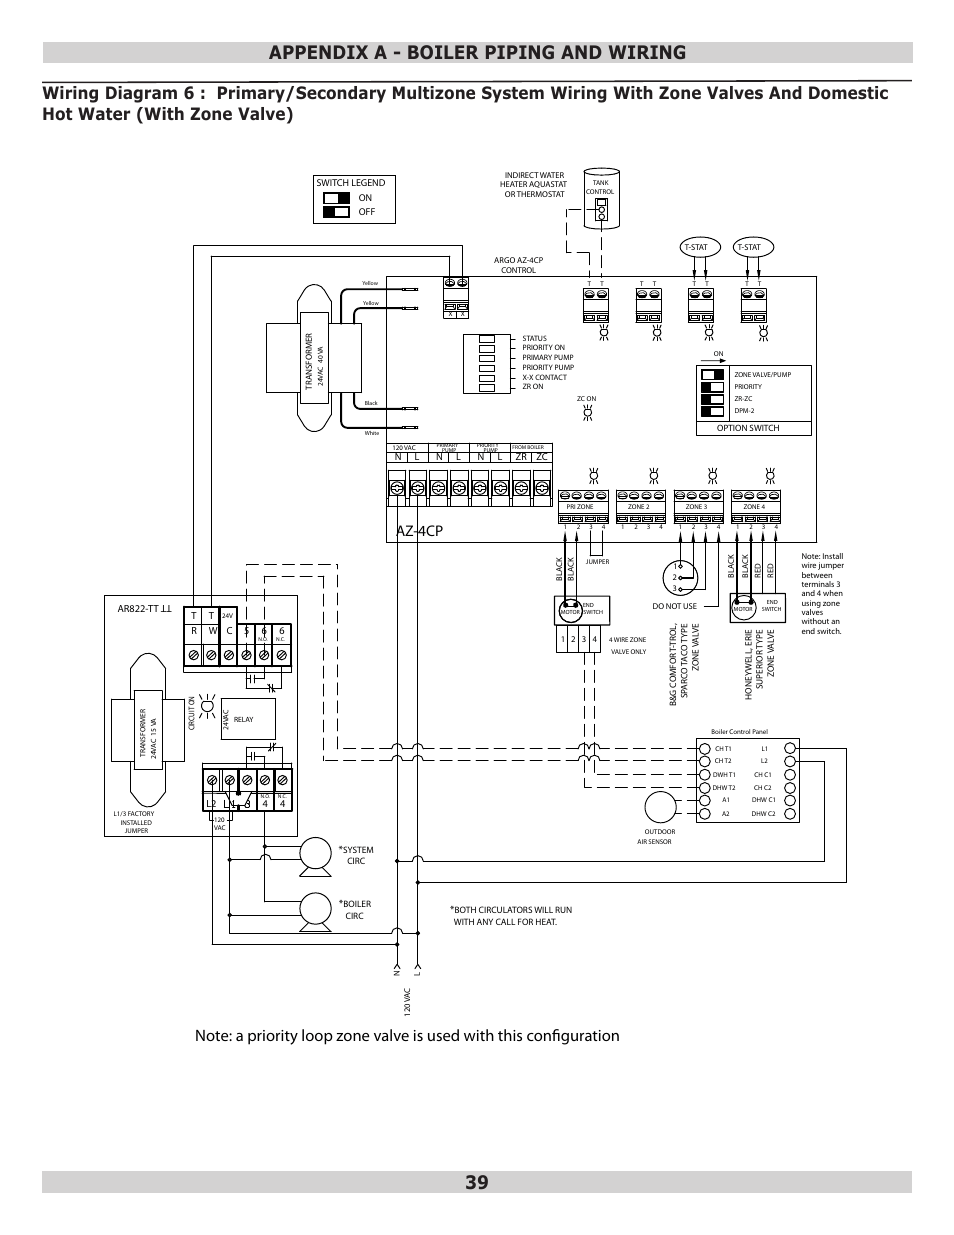 hight resolution of appendix a boiler piping and wiring 39 az 4cp dunkirk q95m